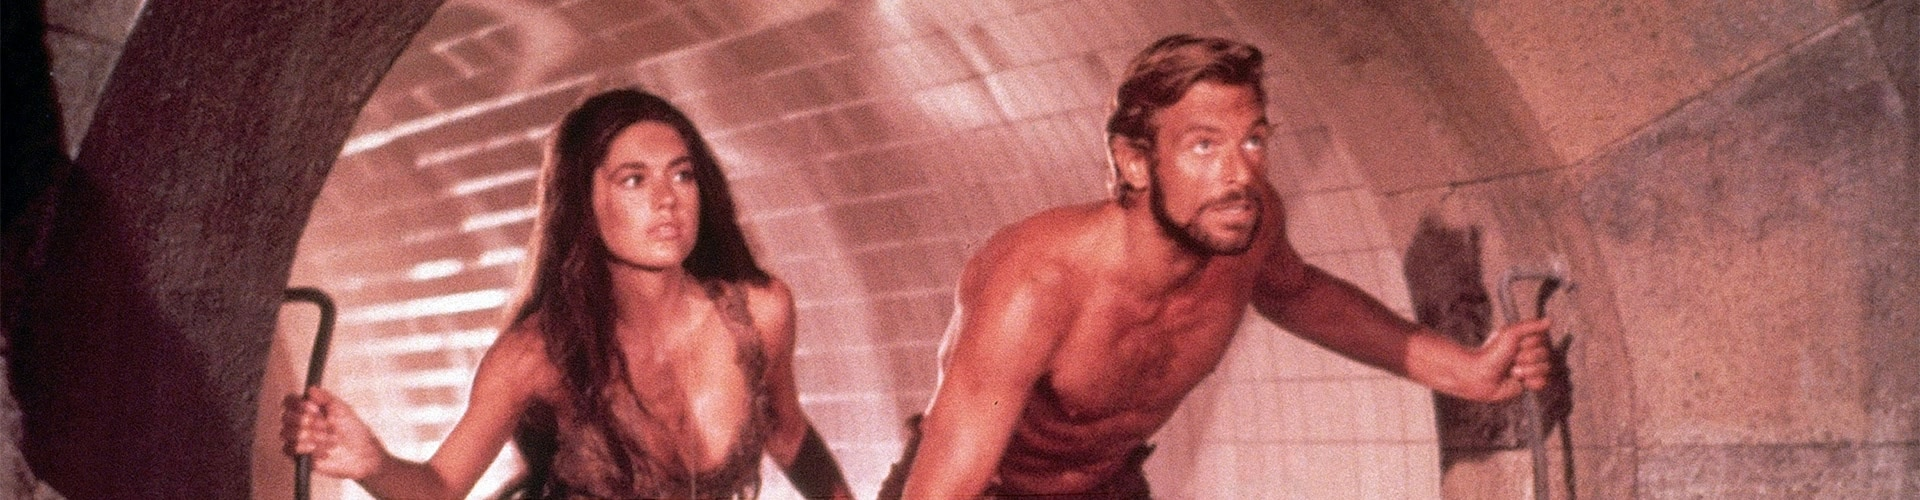 Watch Beneath The Planet Of The Apes Online